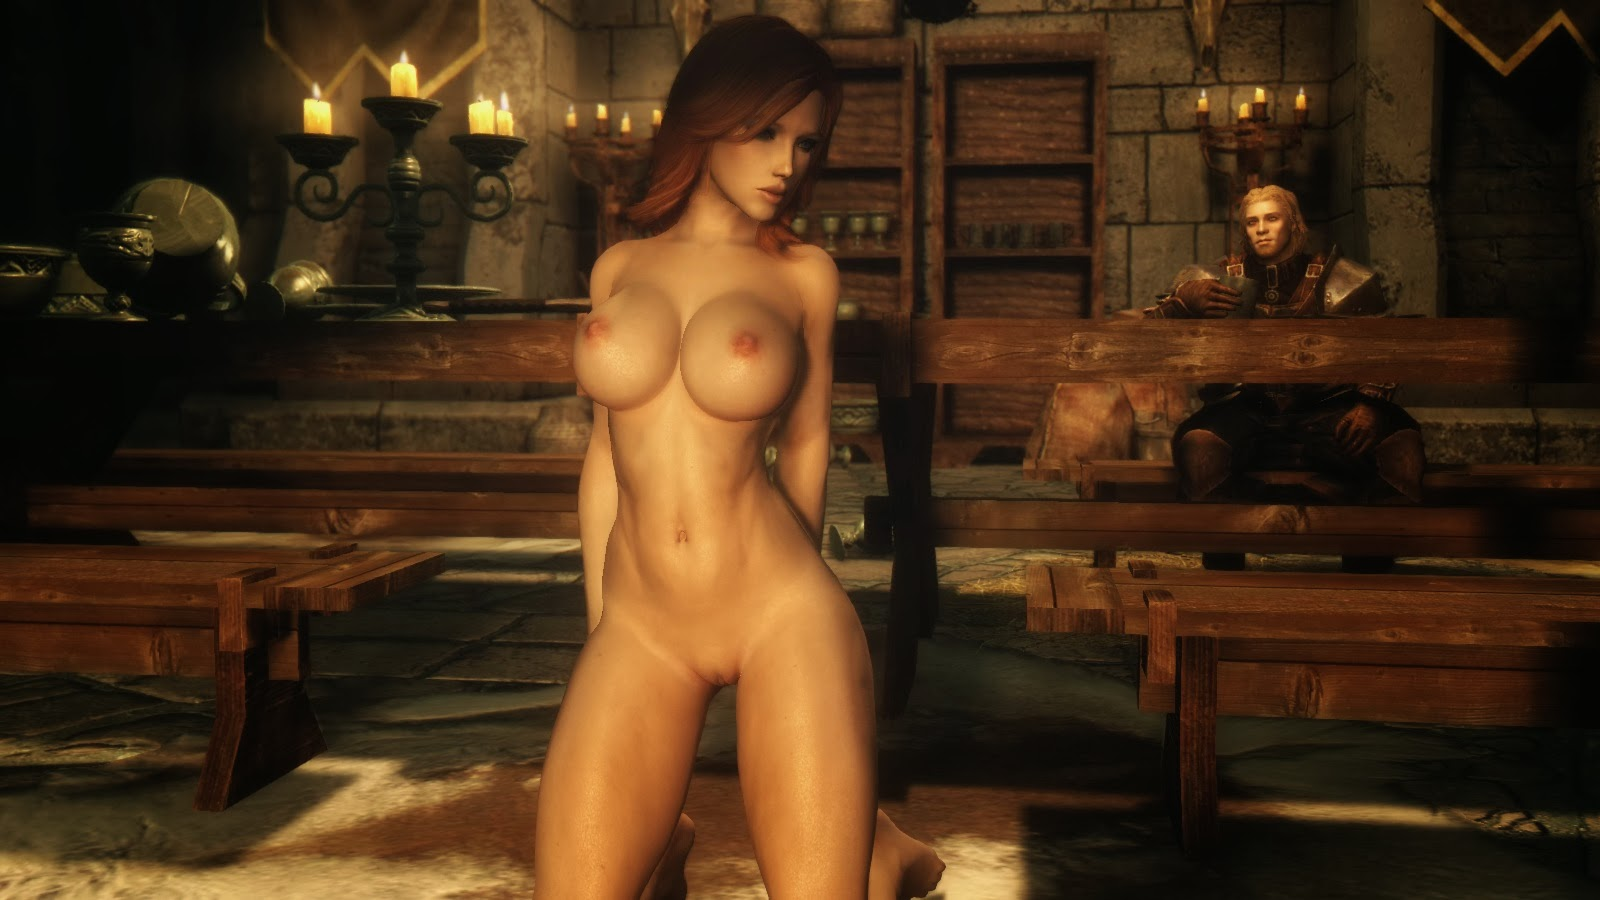 Skyrim female nudes nsfw videos